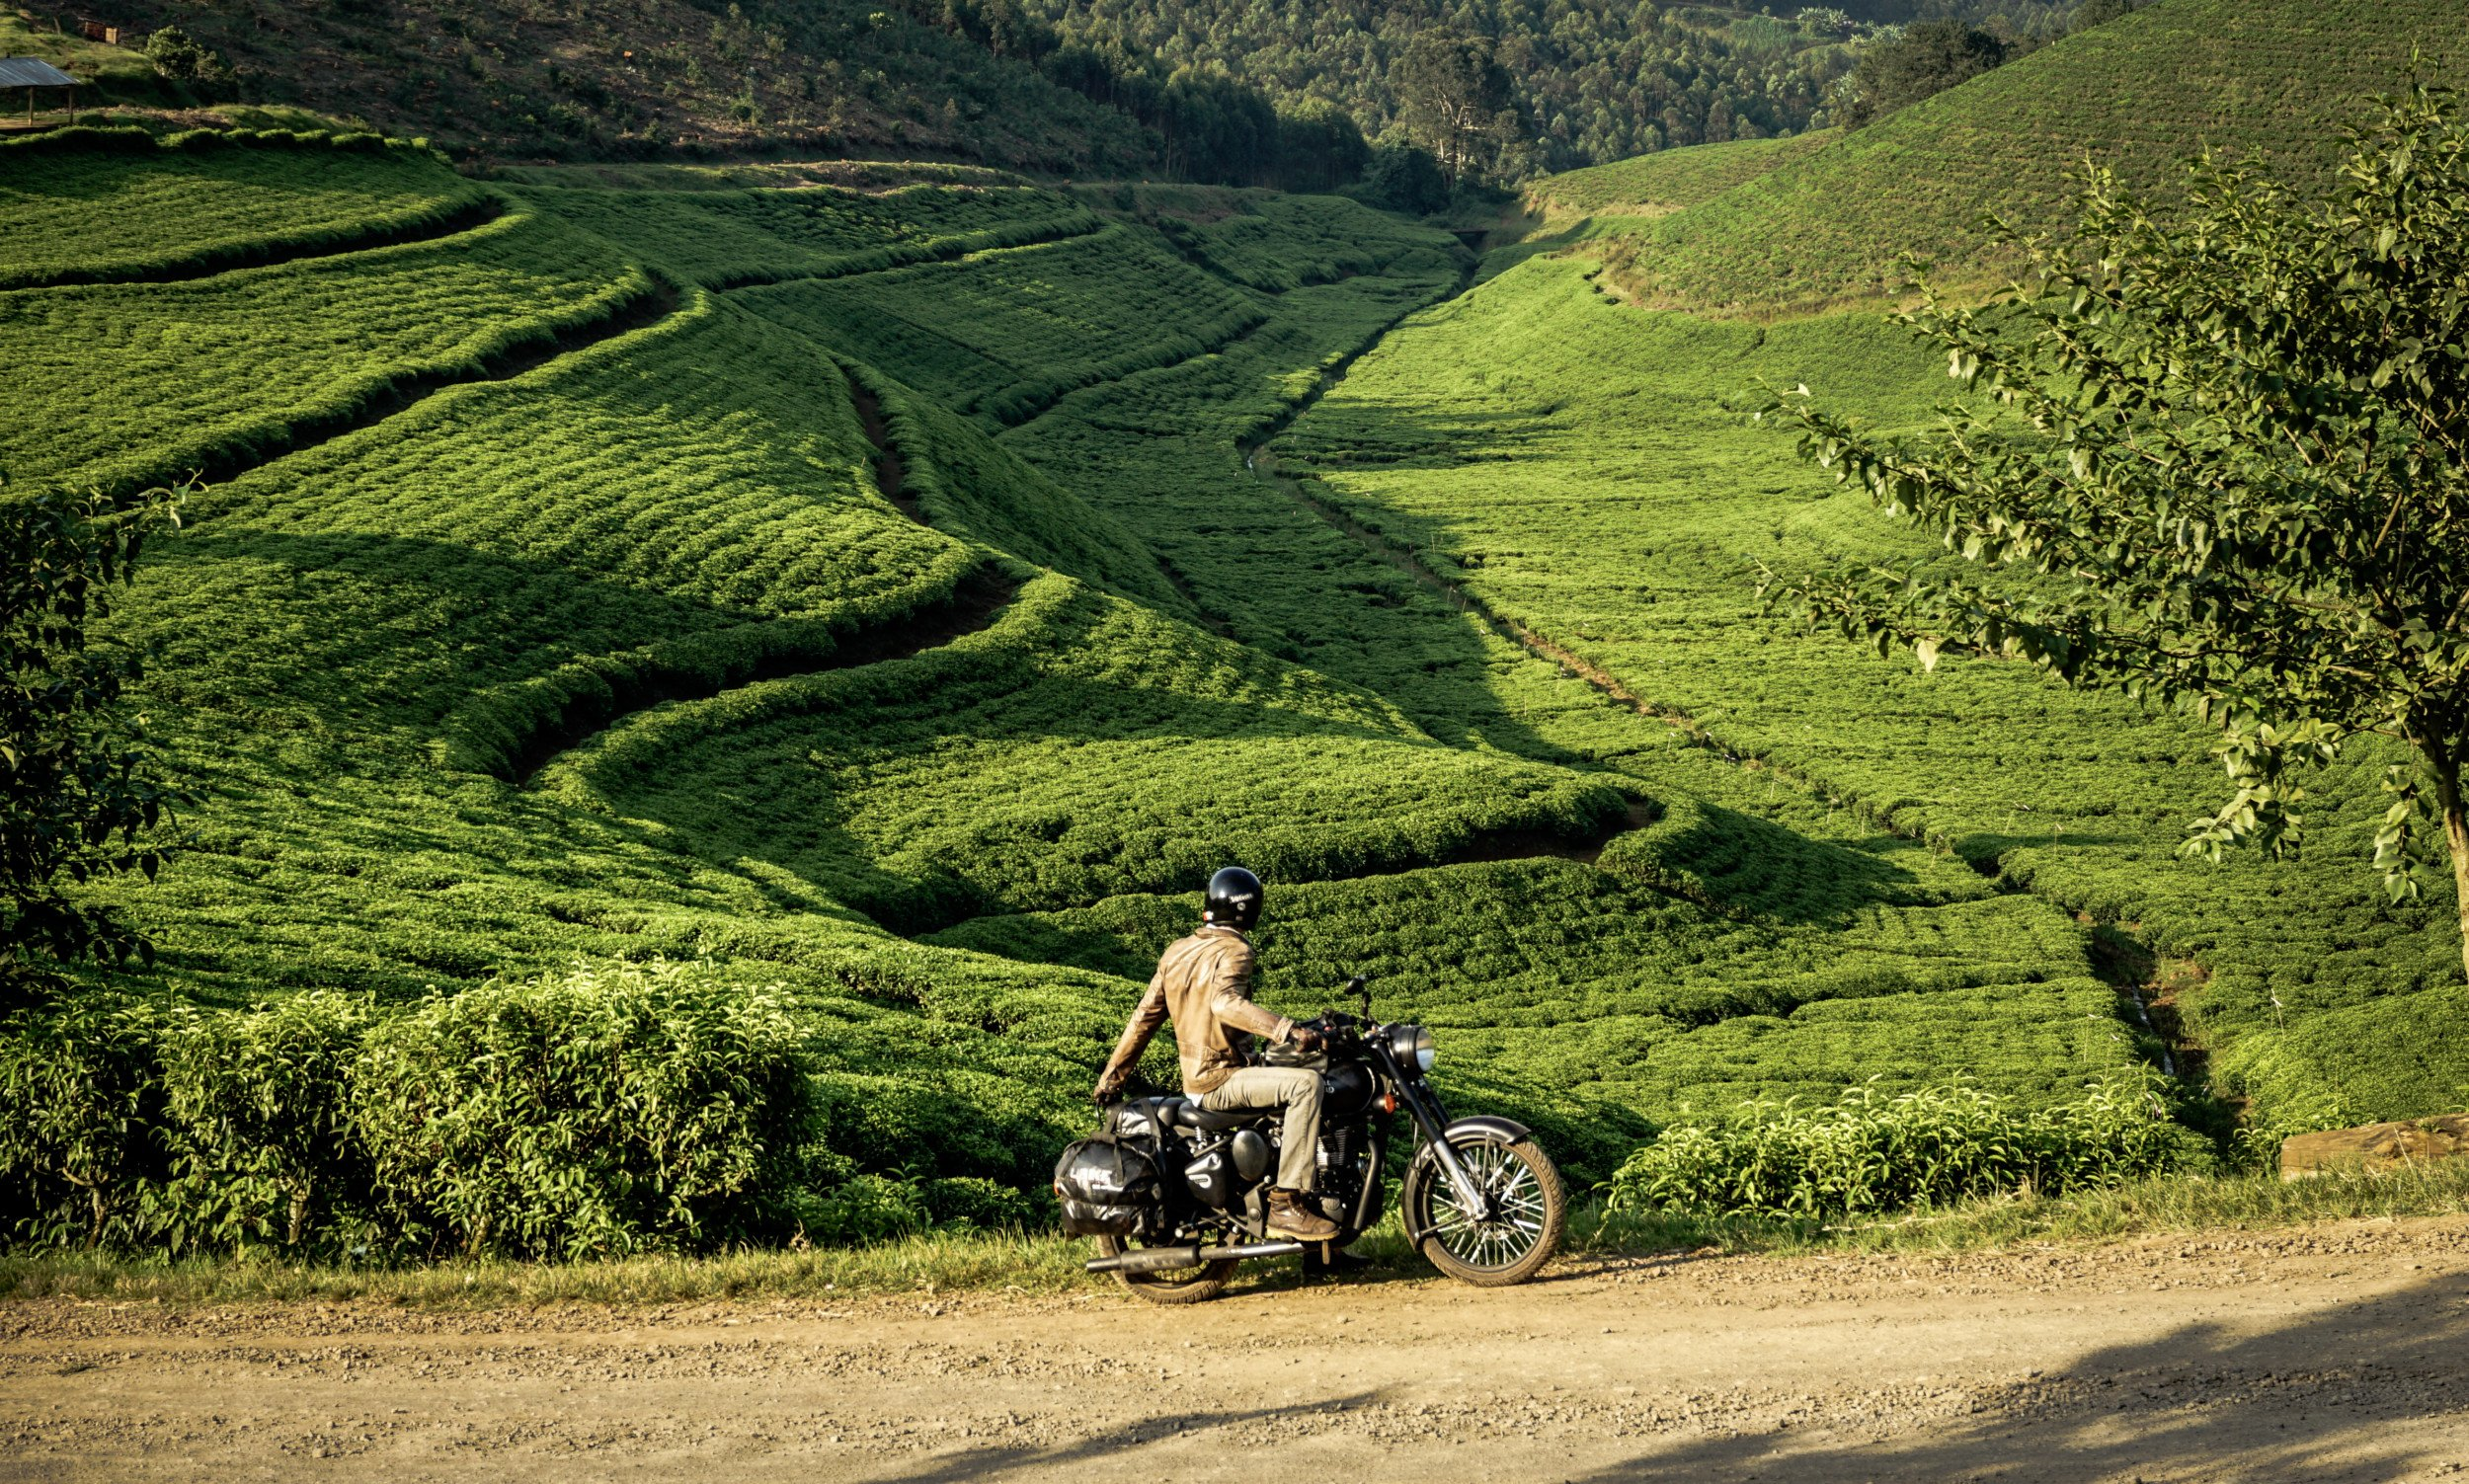 Motorcycle road trip Rwanda - Rwanda : The Land of a Thousand Hills